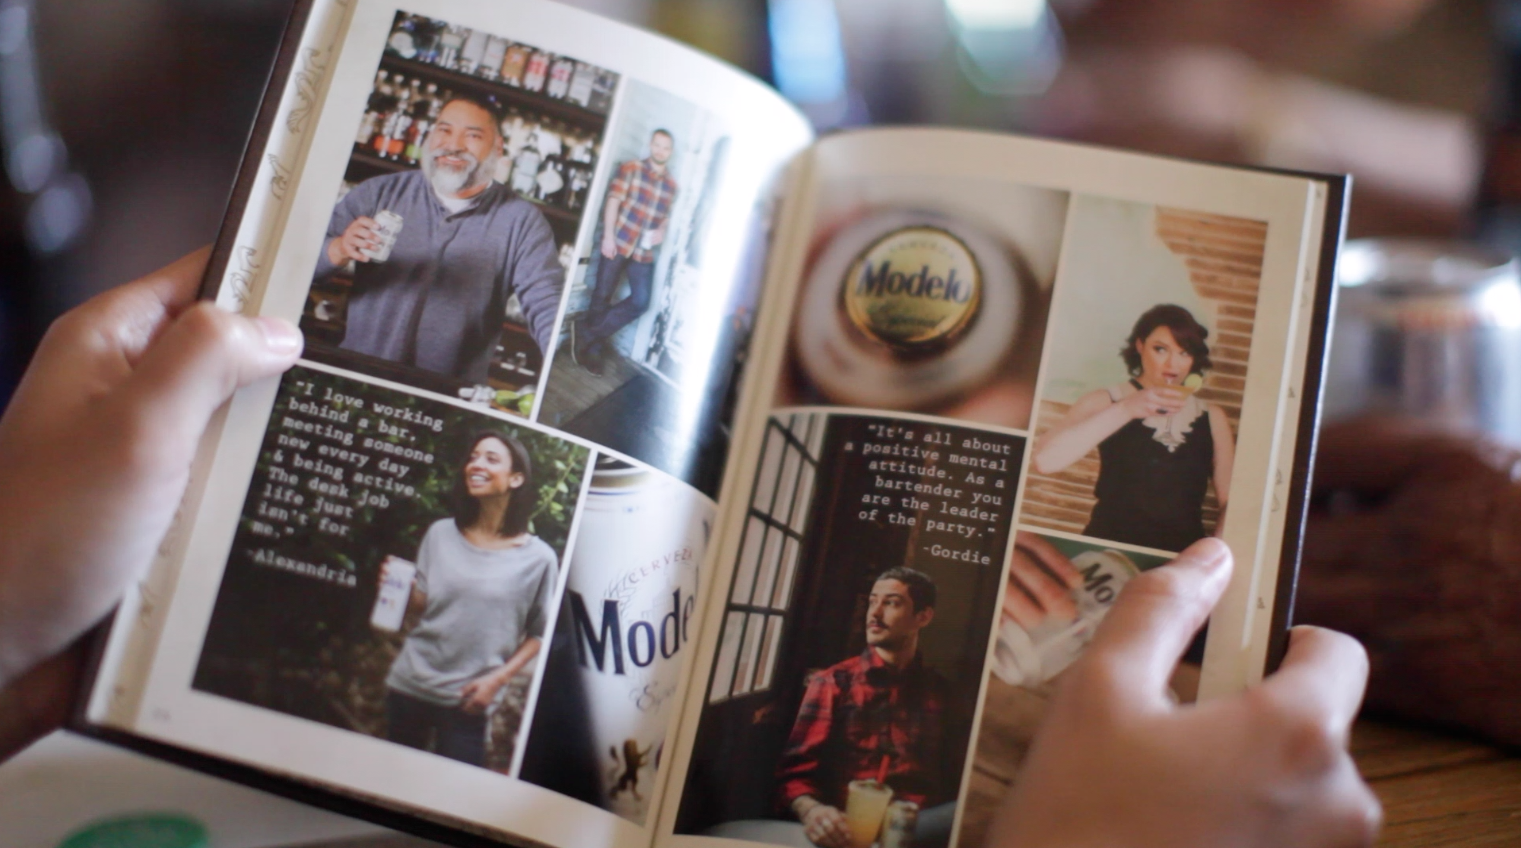 Eddie Costilla (top-left corner), owner of La Perla, is featured in a speciality cocktail book for his staple drink, the Armodelo. Photo by: Camille Garcia